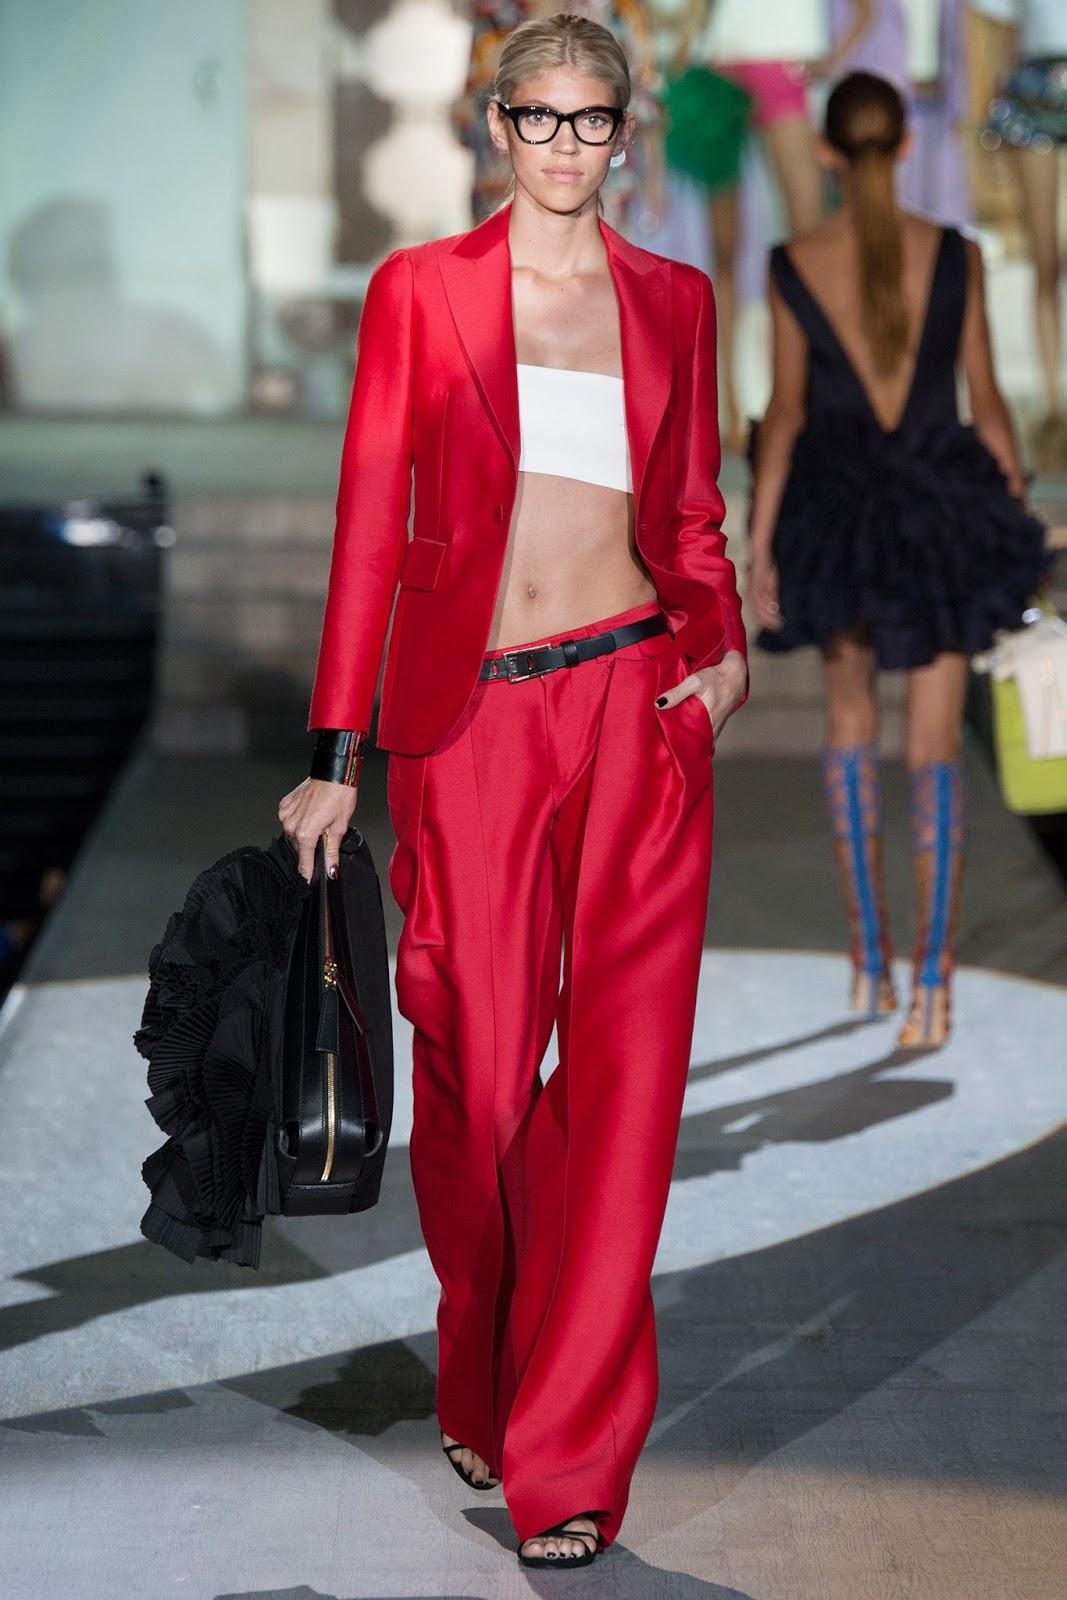 DSquared2 / Spring/Summer 2015 trends / trouser suit / styling tips and outfit inspiration / via fashioned by love british fashion blog